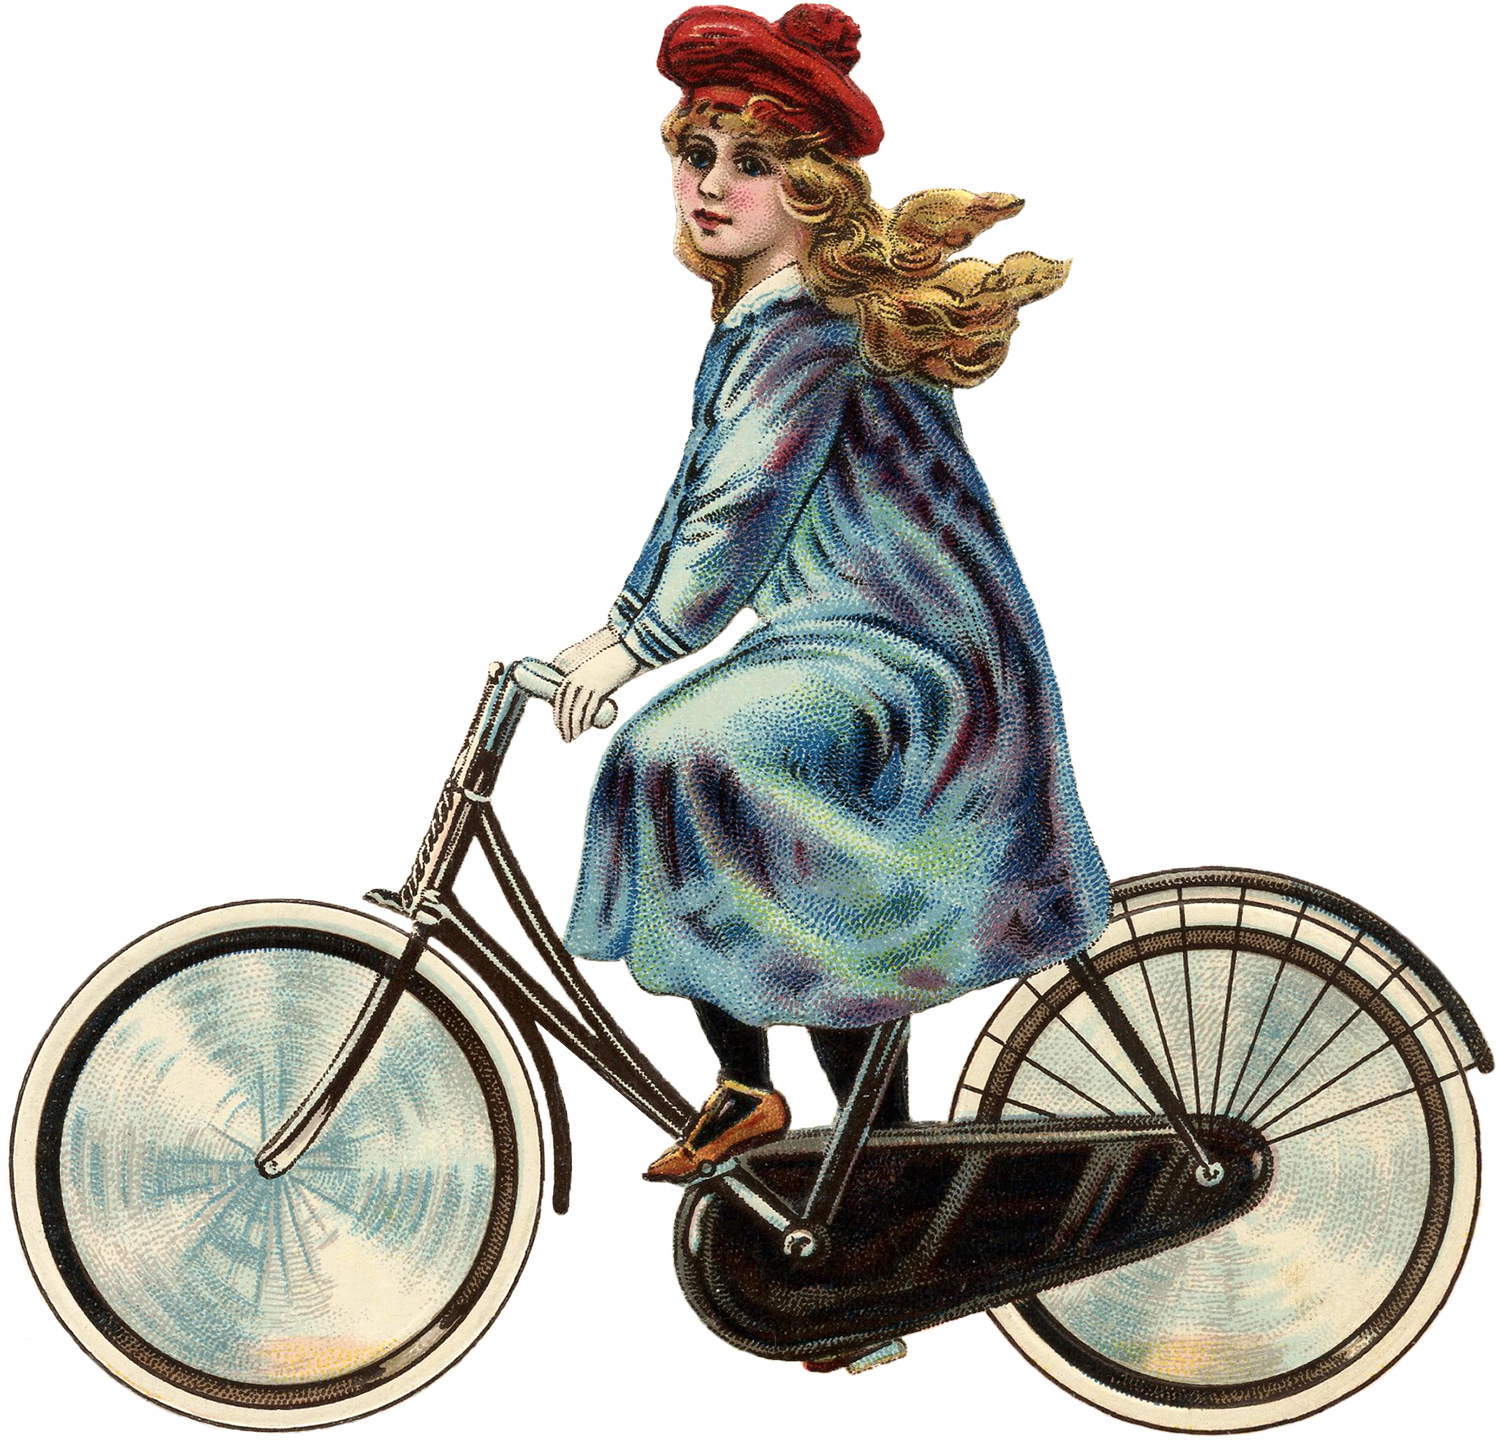 Antique Bicycle Girl Image - The Graphics Fairy